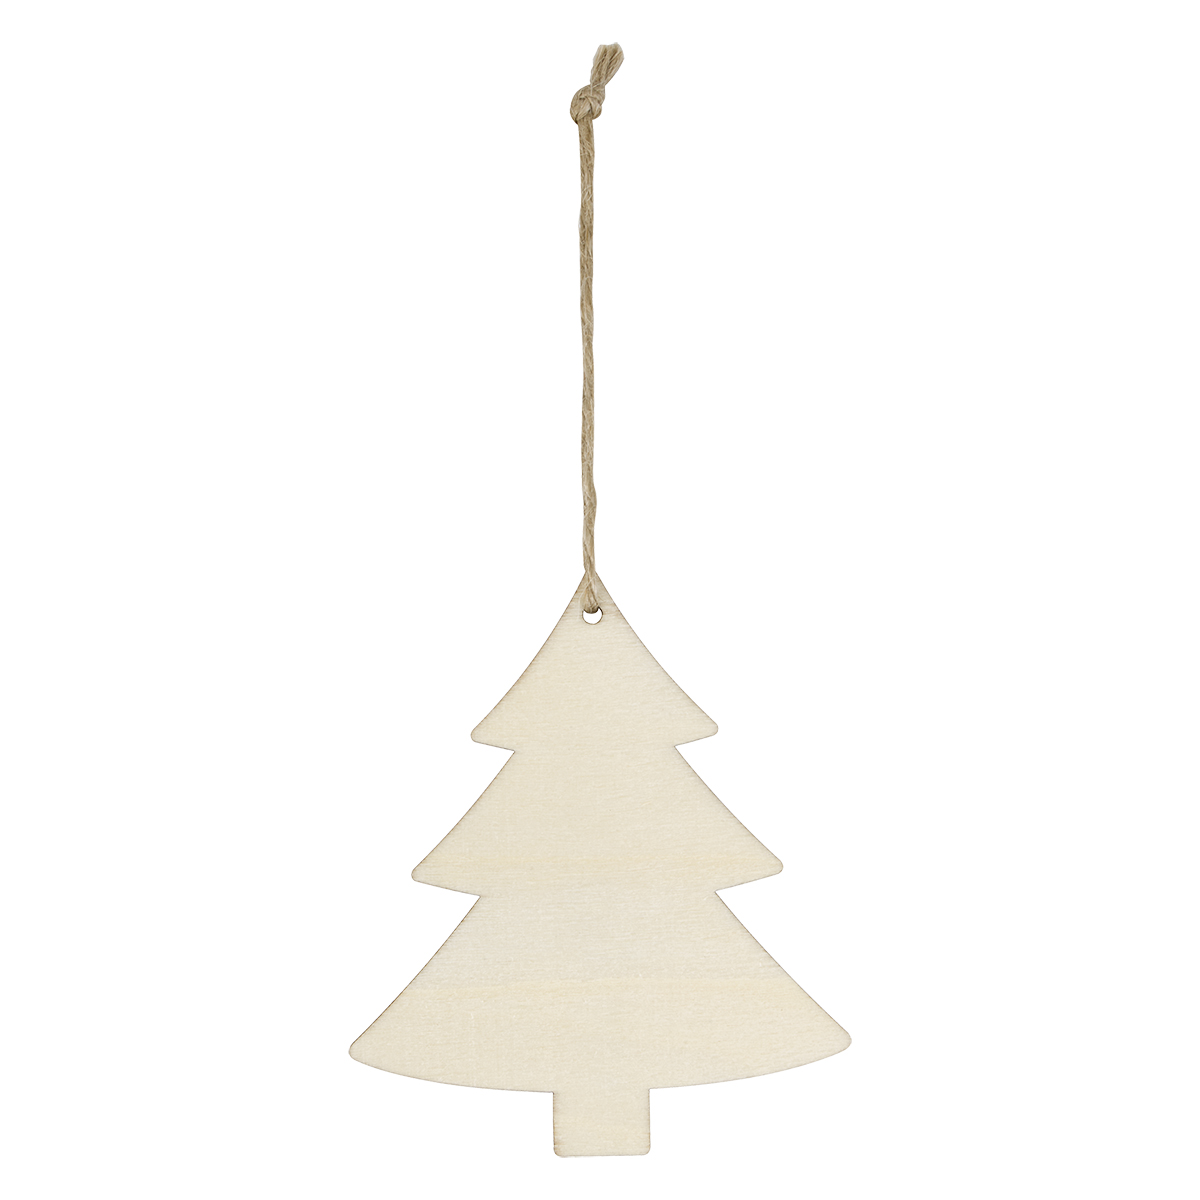 Wood Ornament - Tree